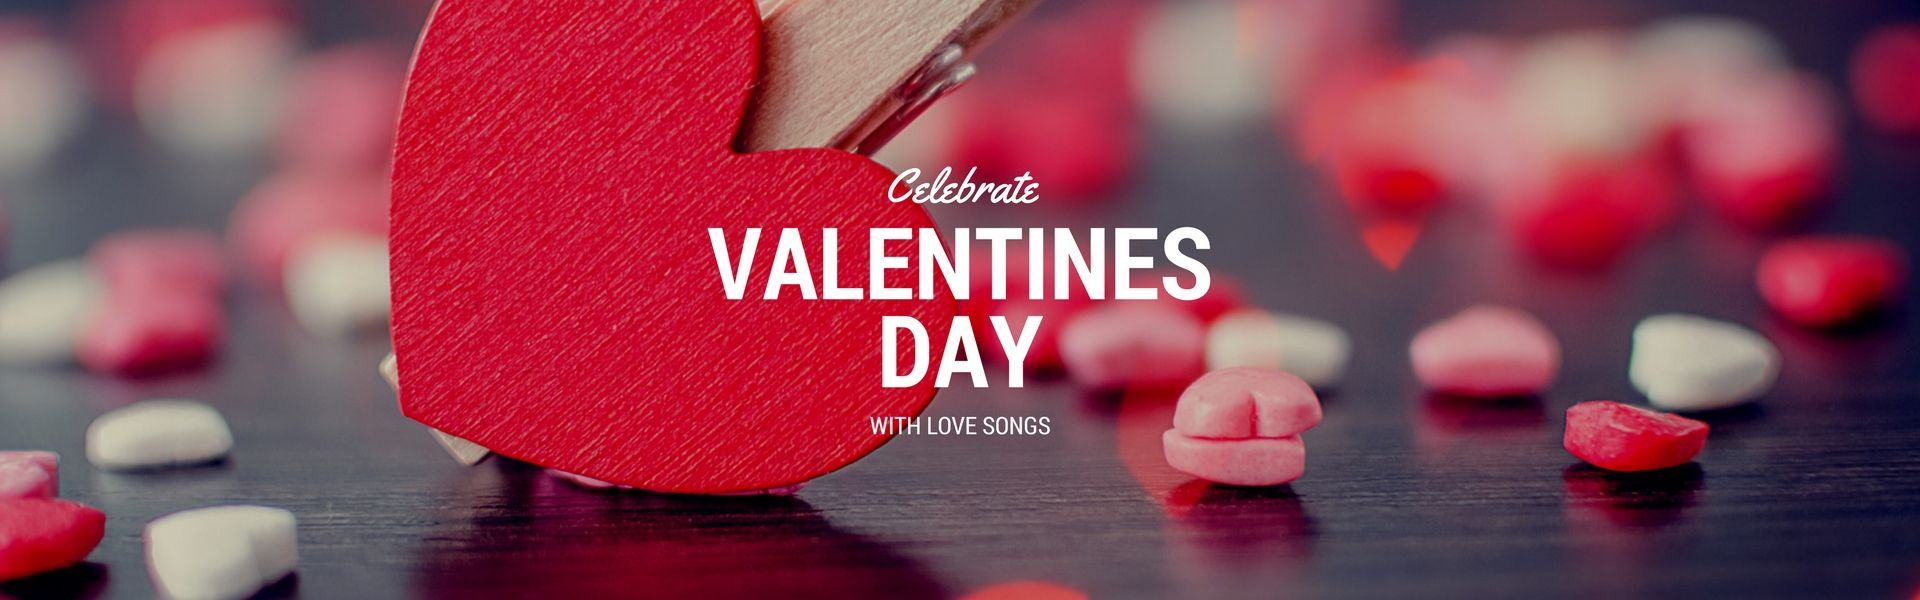 Celebrate Valentines Day With Songs